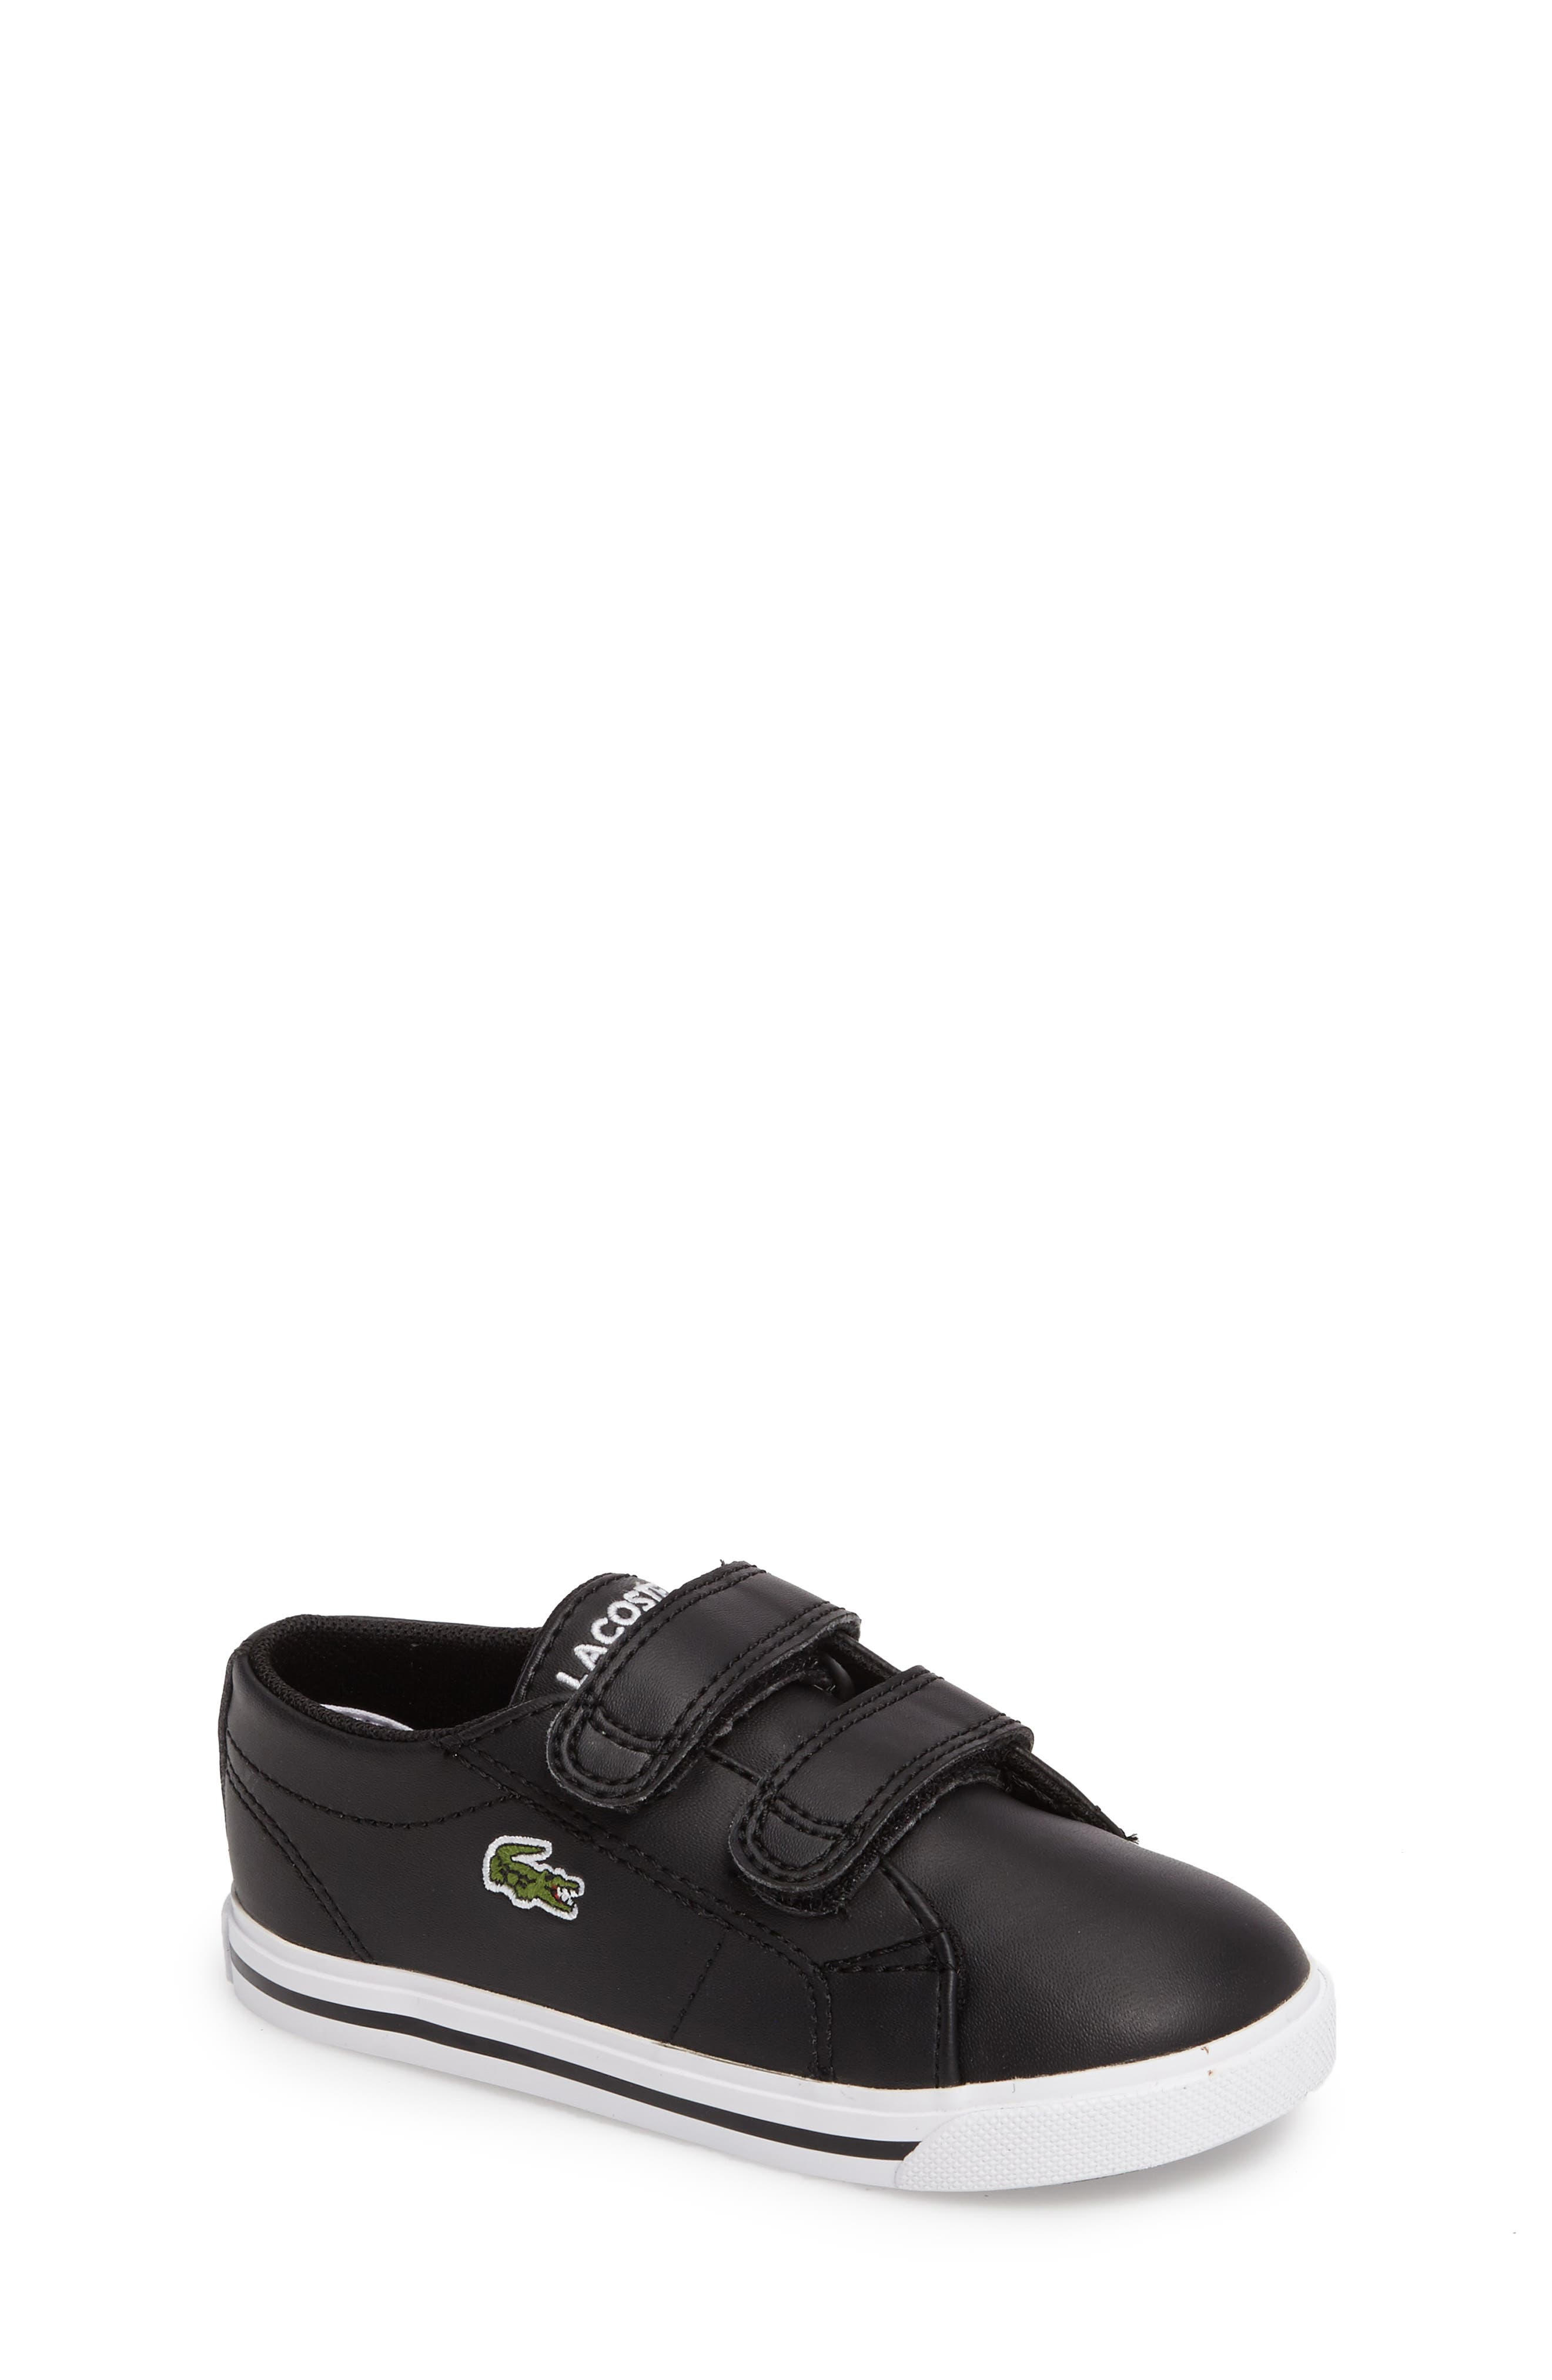 Lacoste Marcel Sneaker (Baby, Walker, Toddler, Little Kid & Big Kid)